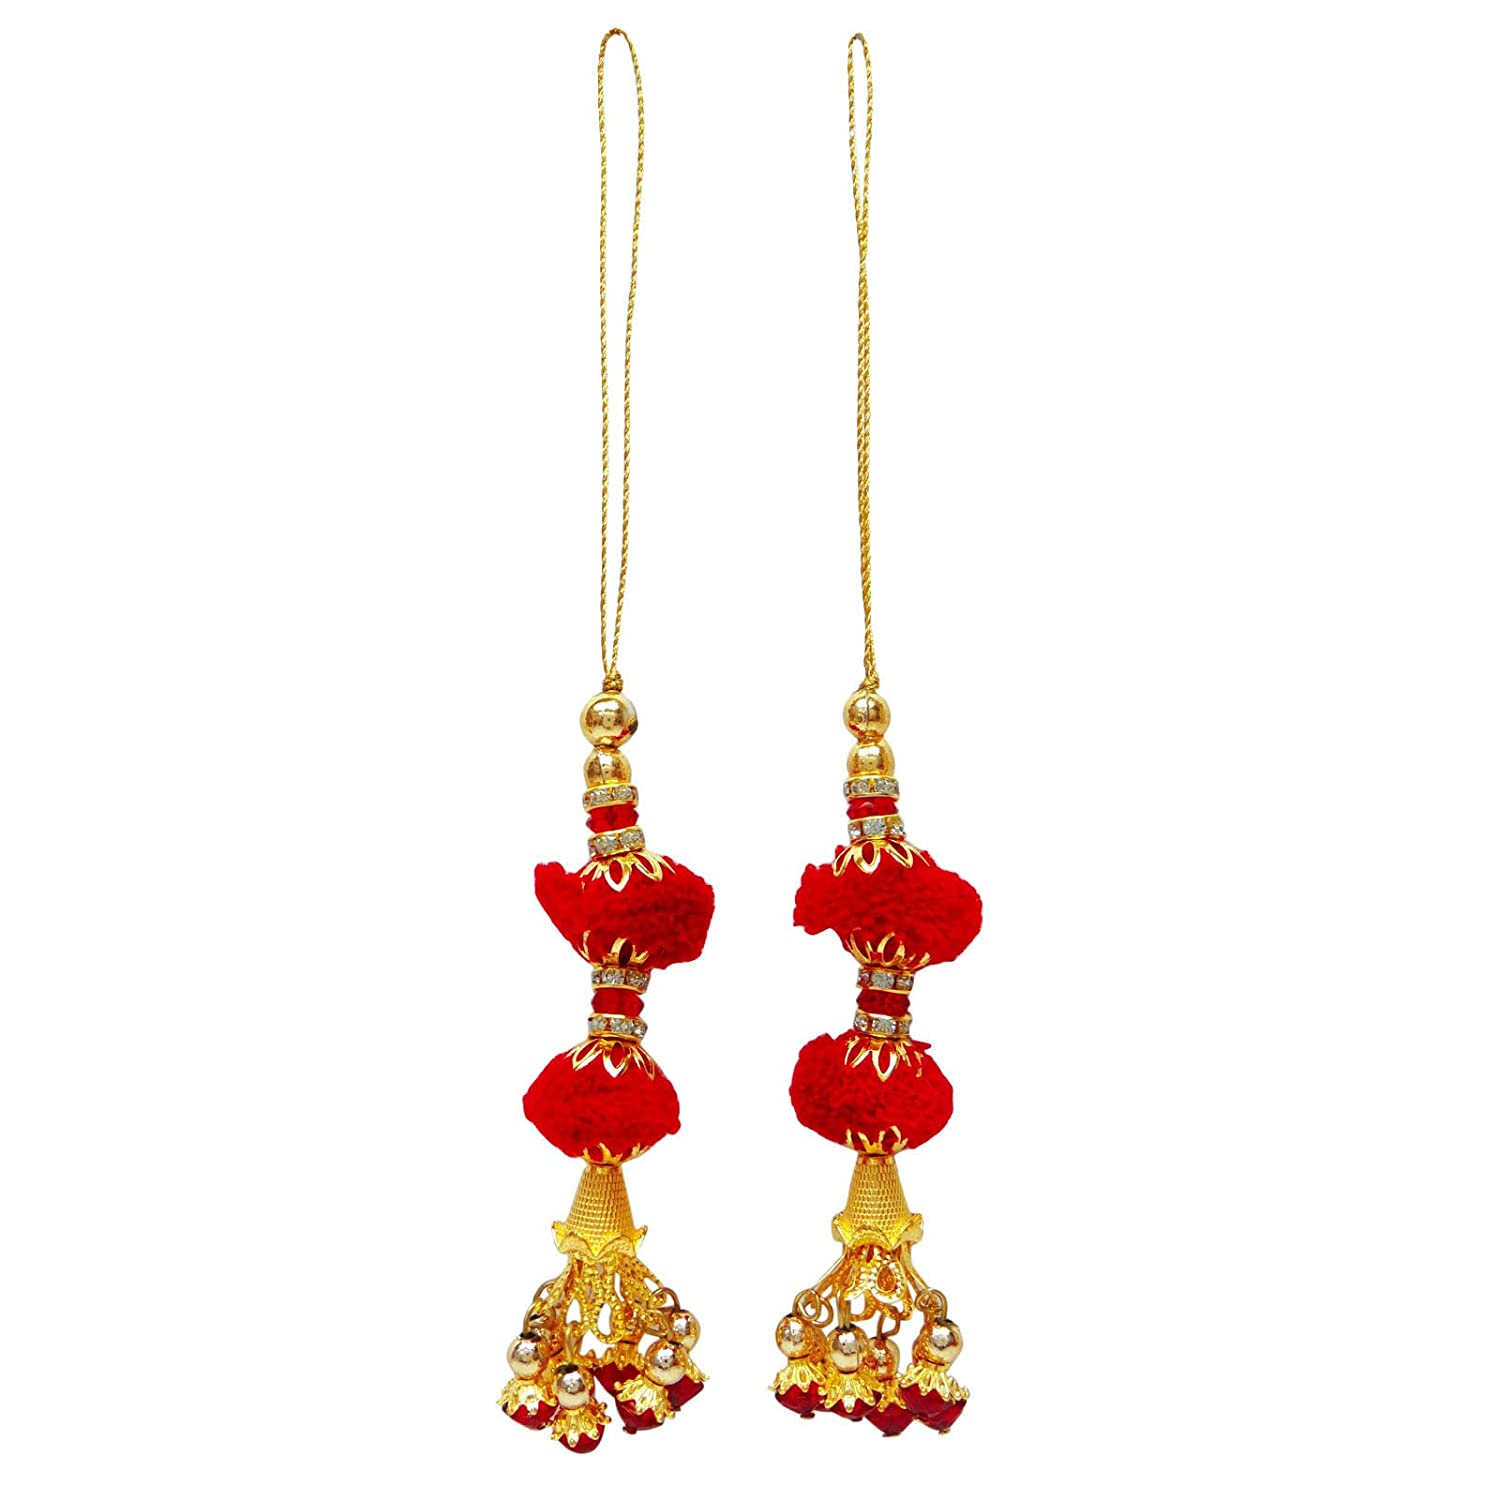 Sewing Accessories Pom Pom Tassels Indian Blouse Latkans Craft Key chain 1 Pair